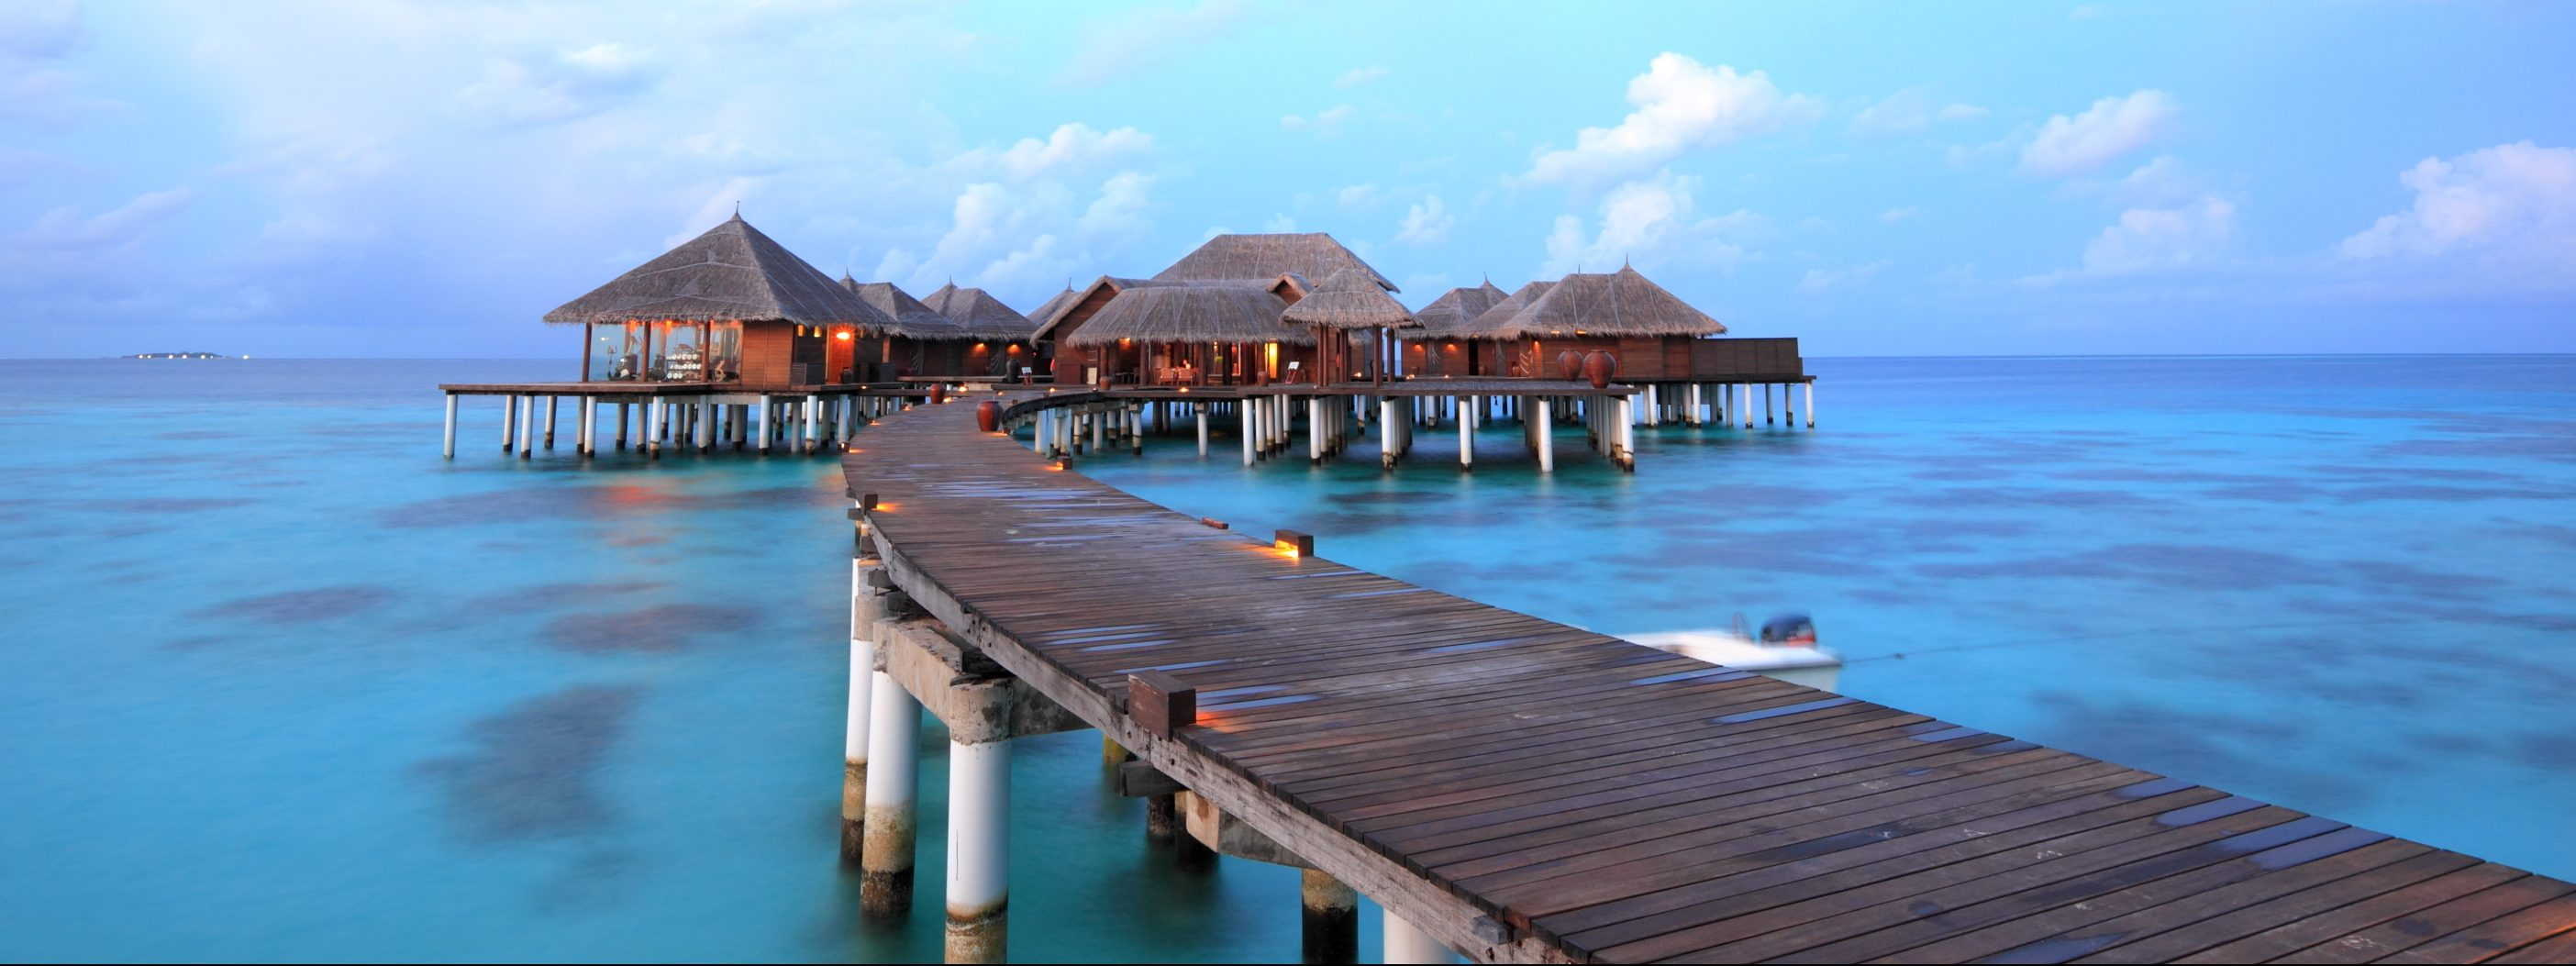 10 Amazing Overwater Bungalows You Can Sleep In